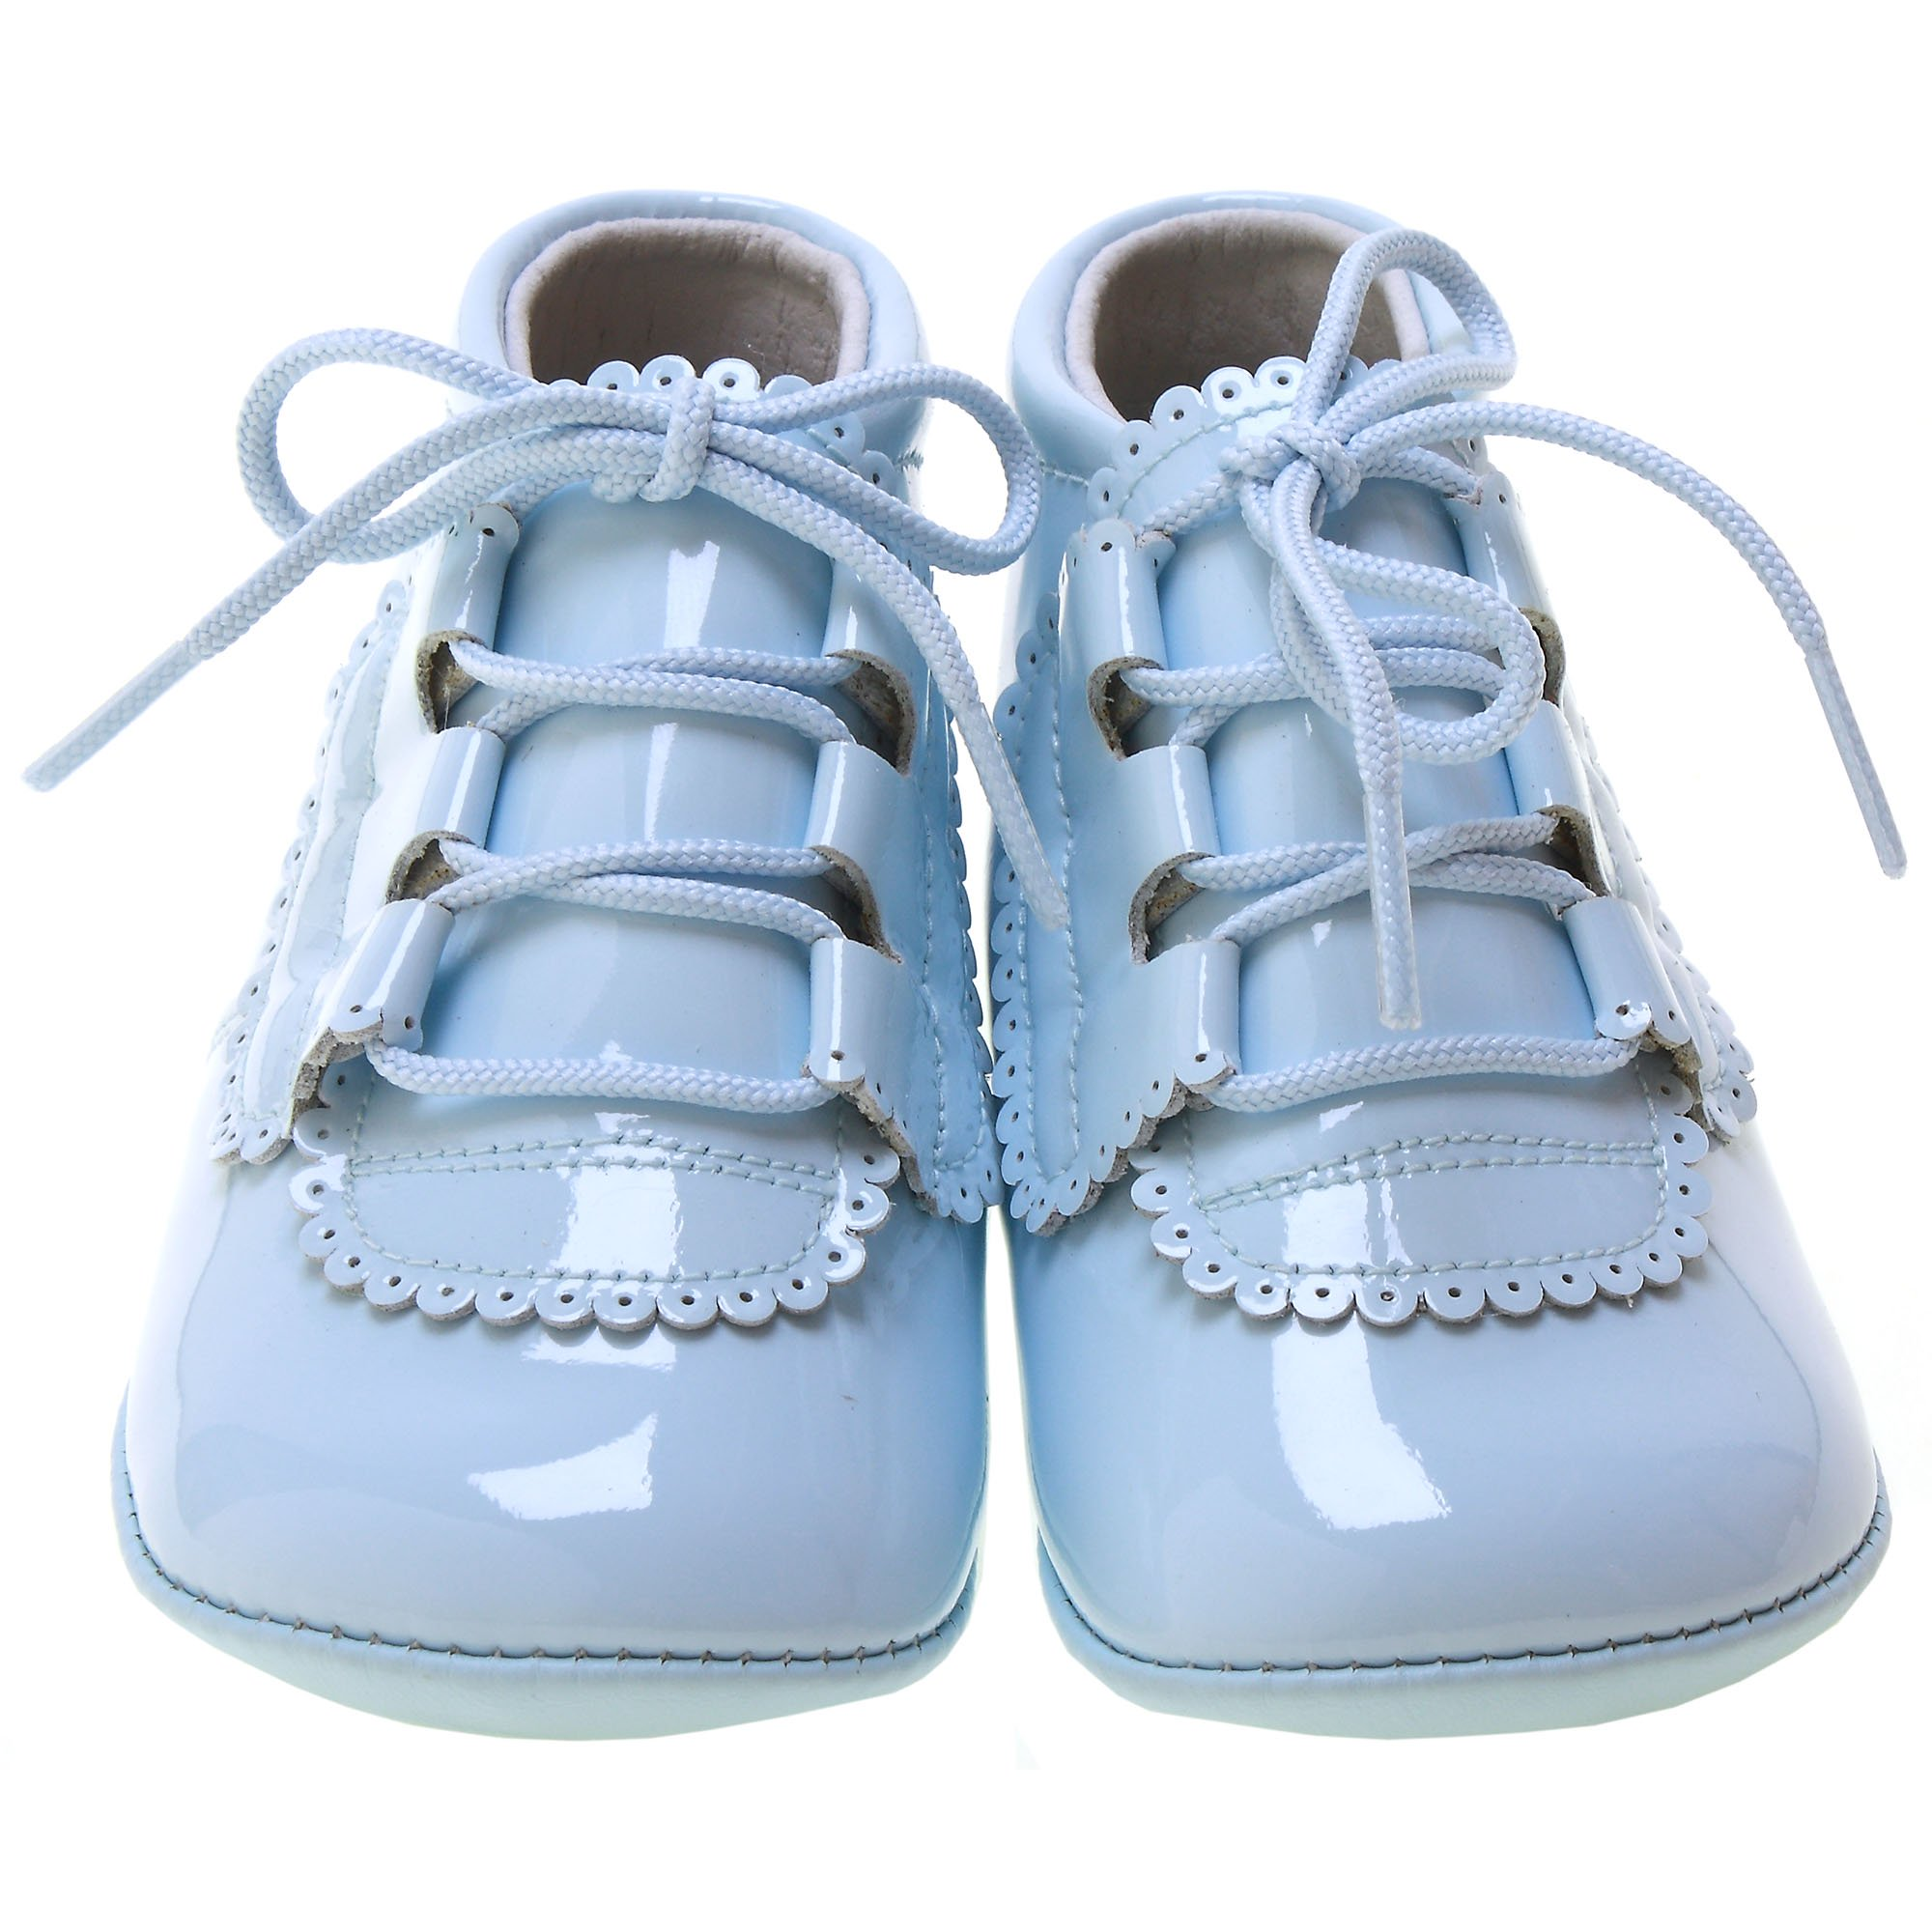 Baby Boy Blue Patent Pram Shoes Leather Scallop